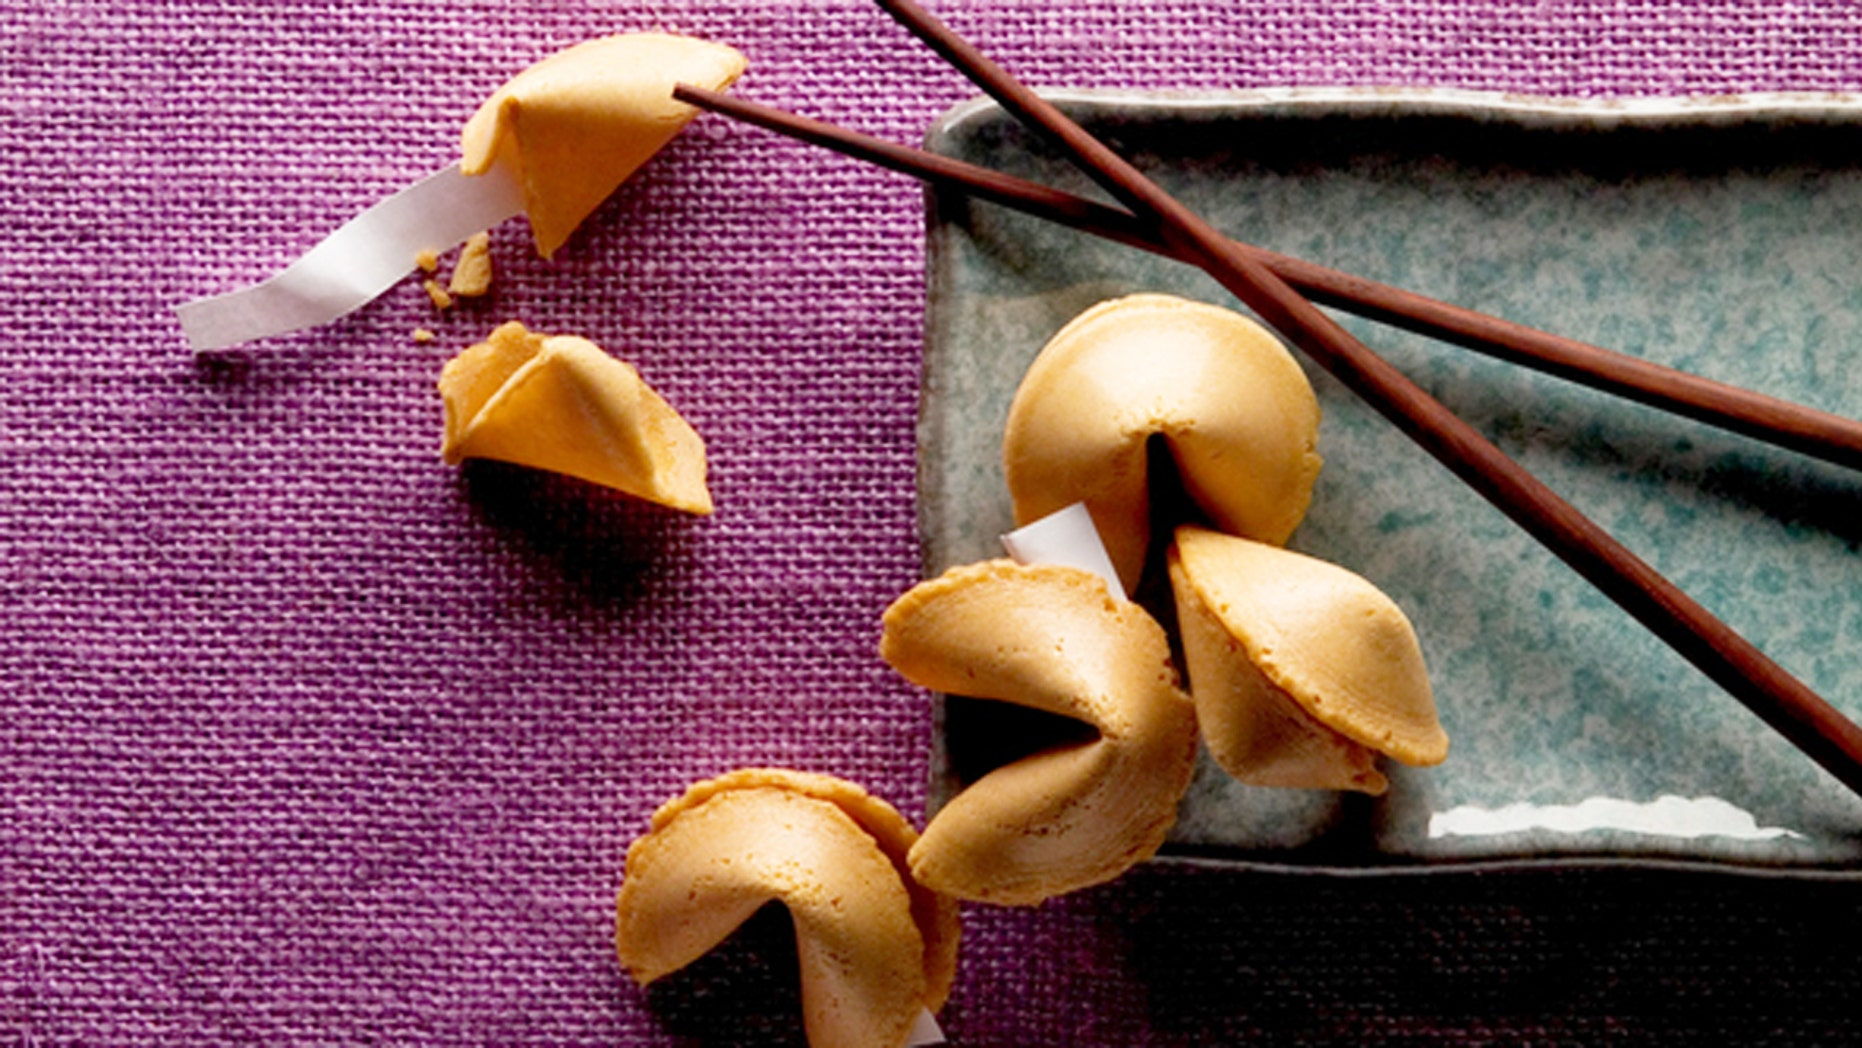 Will fortune cookies ever be the same?